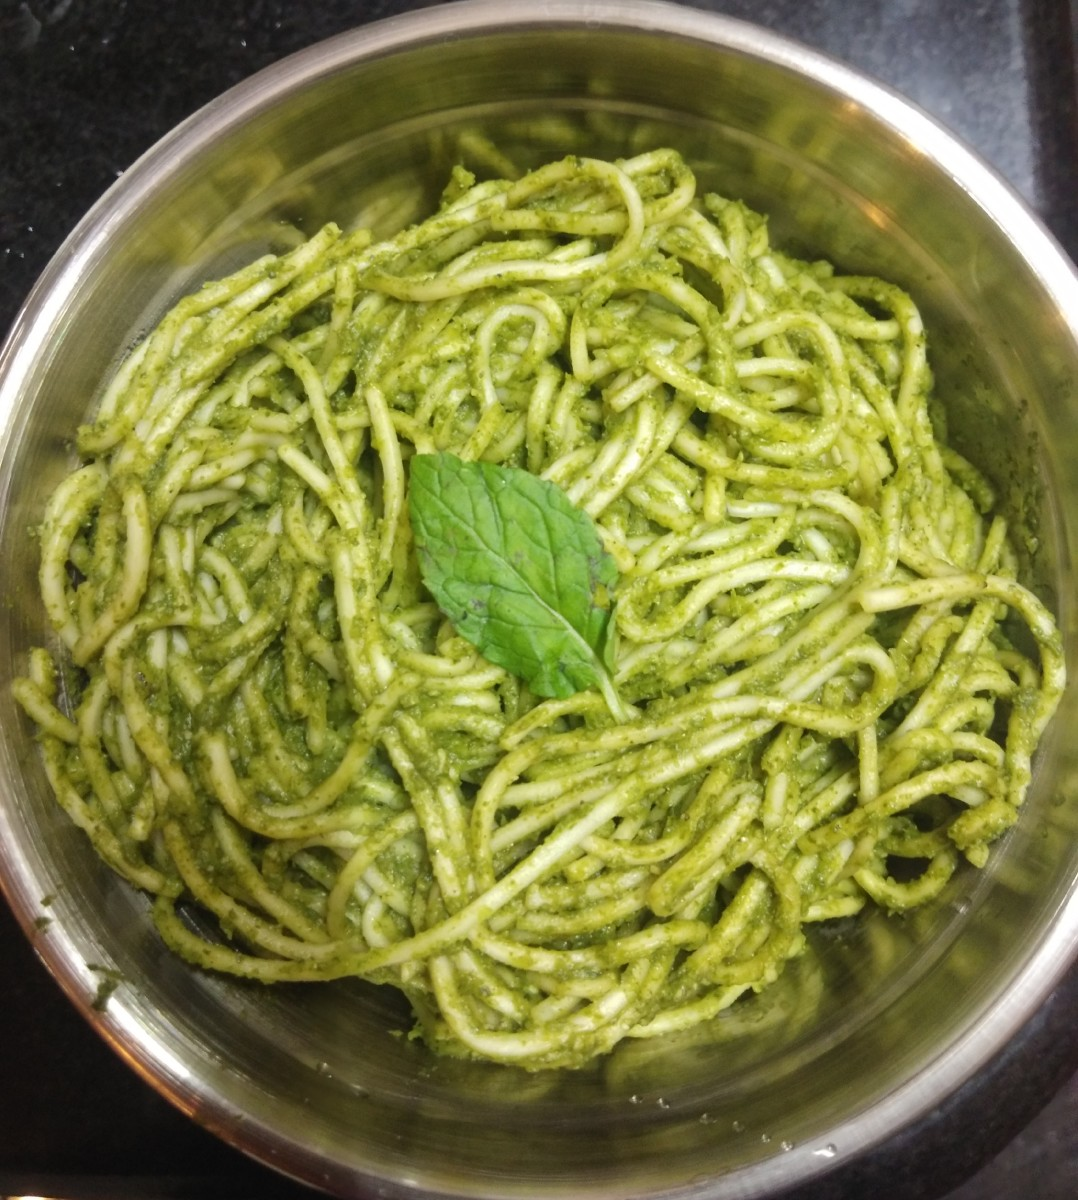 Green noodles, or noodles with mint paste.